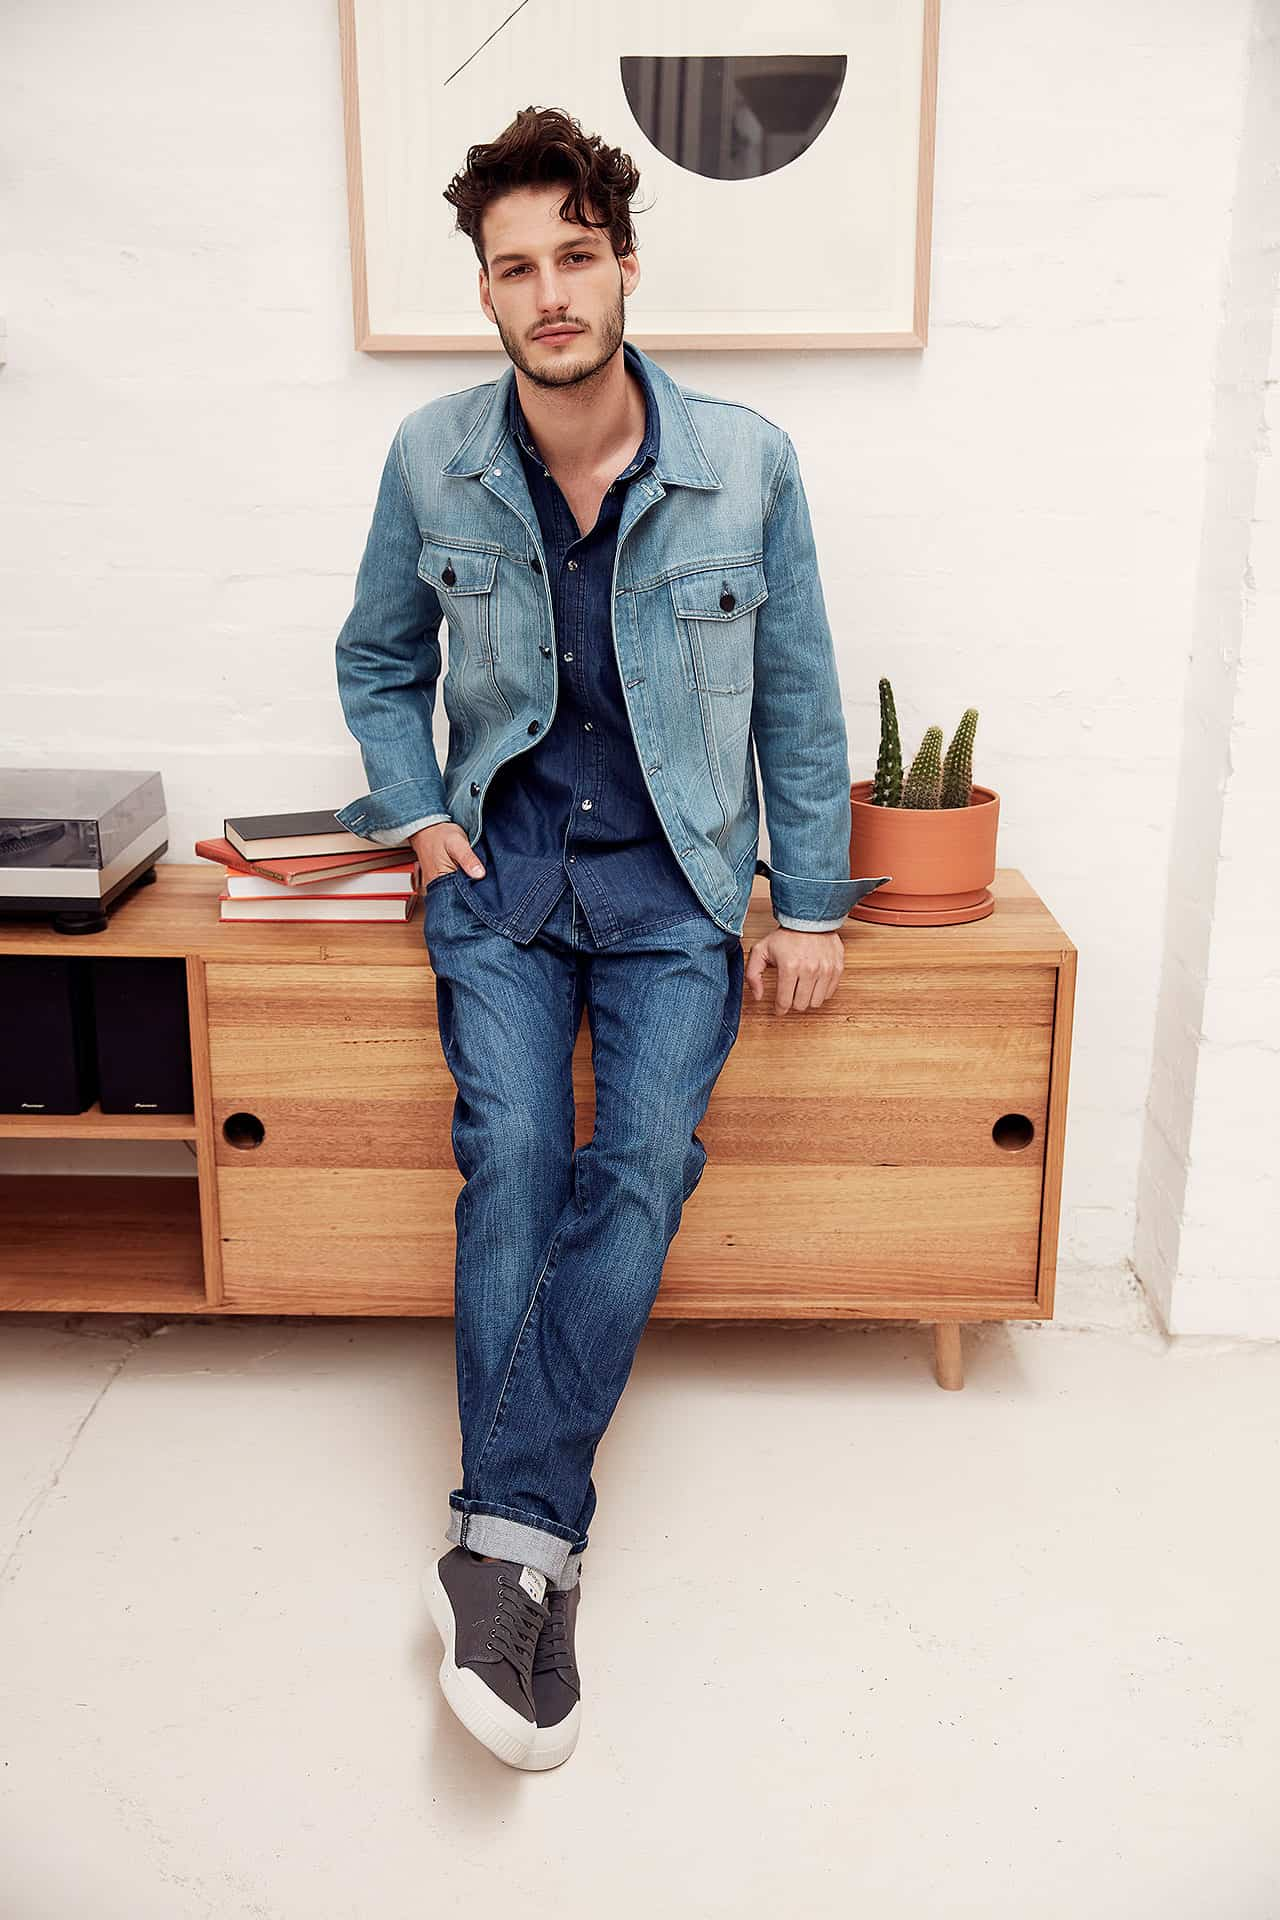 MEN: Elah Jacket Light Indigo (DSMJKT10003.S.4), Nixon Shirt Dark Indigo (MSH9006.S.10) and Quinn Jean Pure Indigo (DSMJ3008.R.8)